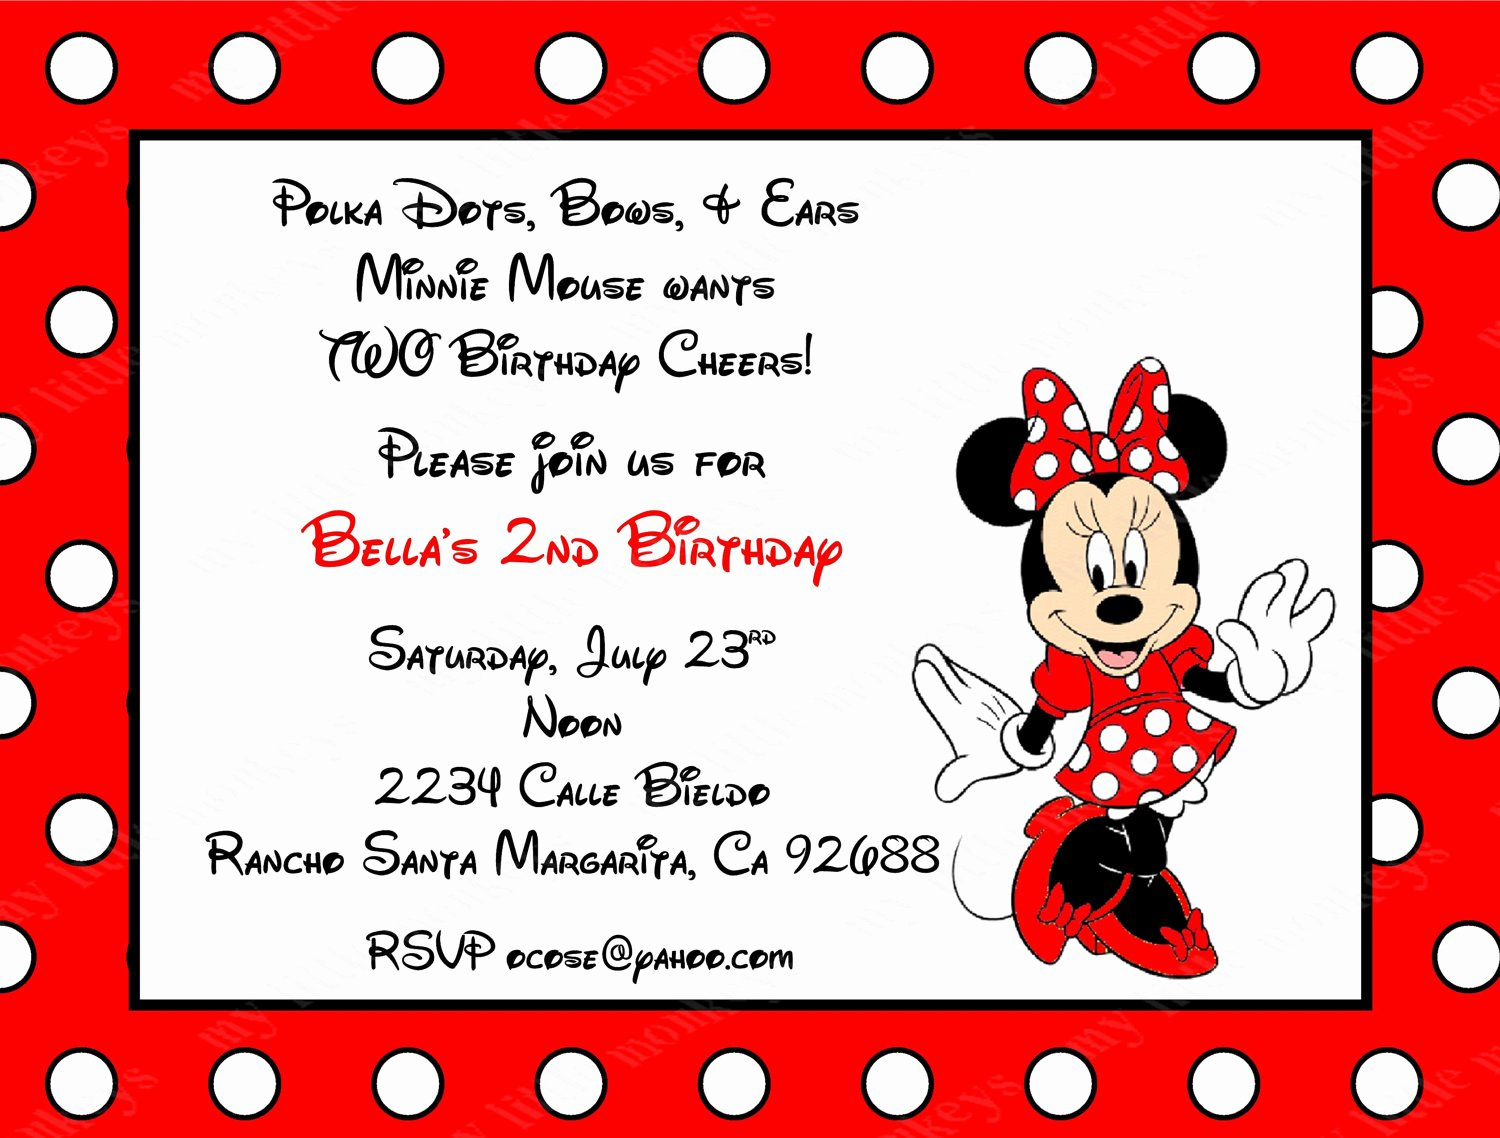 Red Minnie Mouse Birthday Invitations Fresh 10 Red Minnie Mouse Invitations with Envelopes Free Return